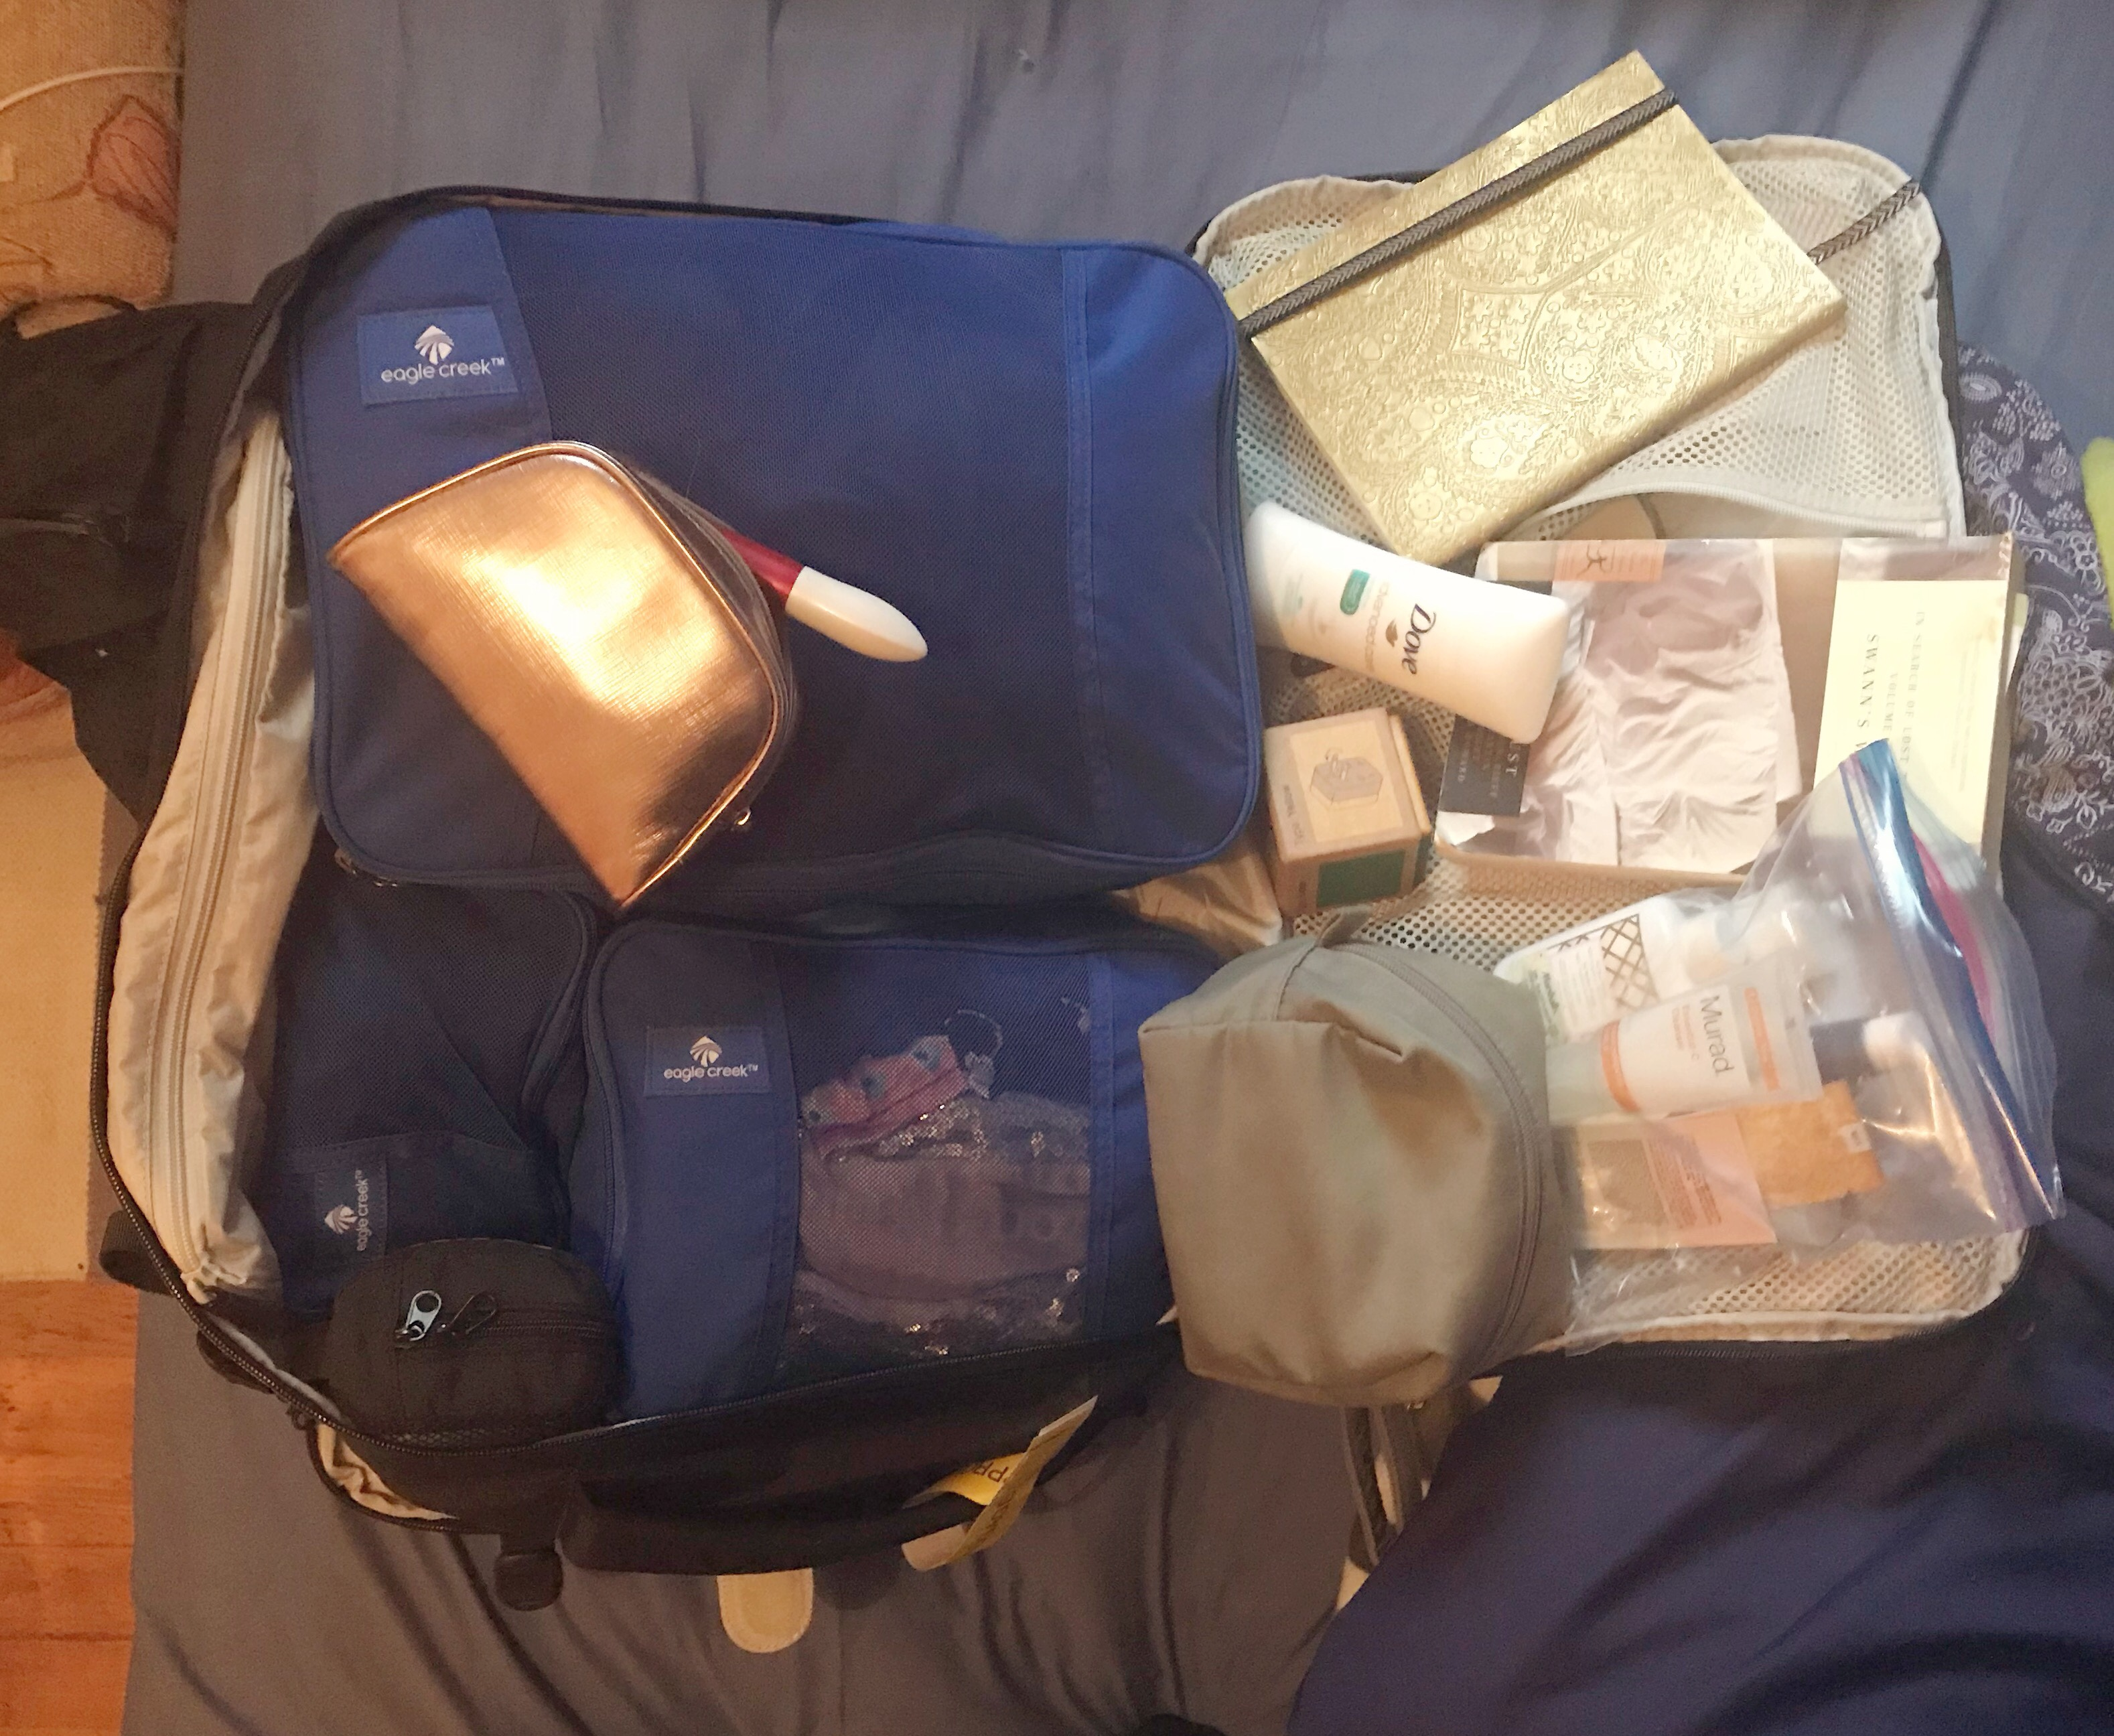 Minimalist travel packing for a solo female travel in a backpack